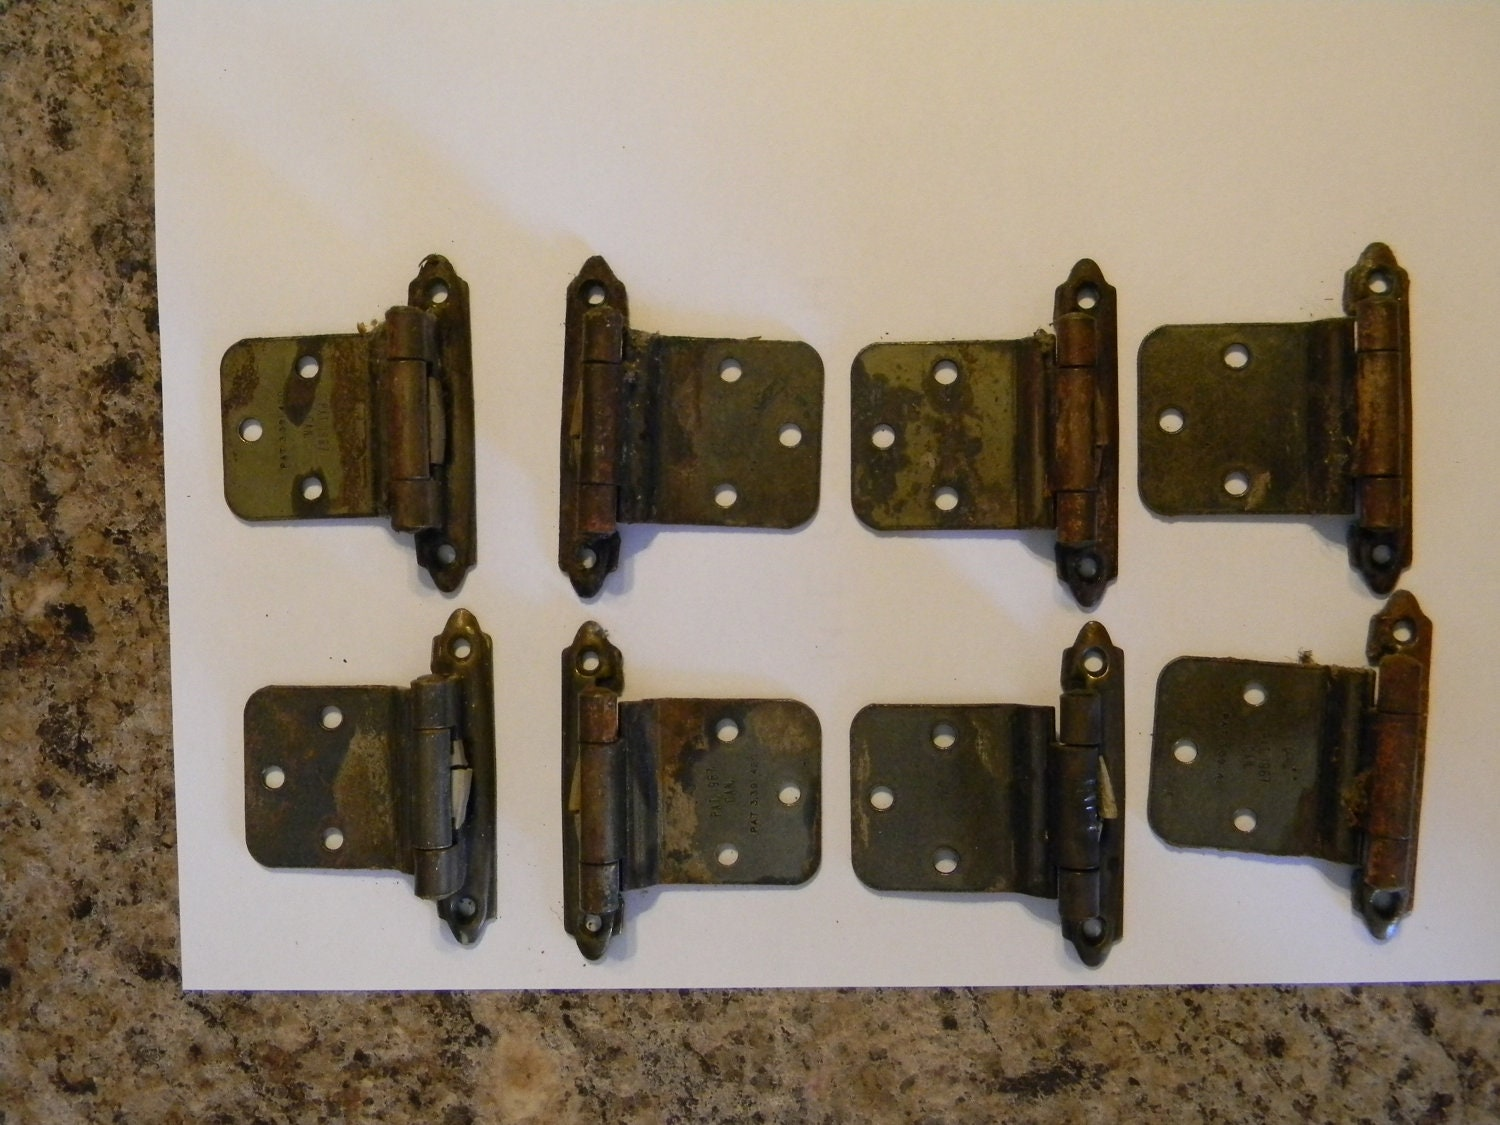 vintage s cabinet hardware hinges kitchen cabinet hardware hinges Hardware Hinges Kitchen Cabinet Hinges zoom